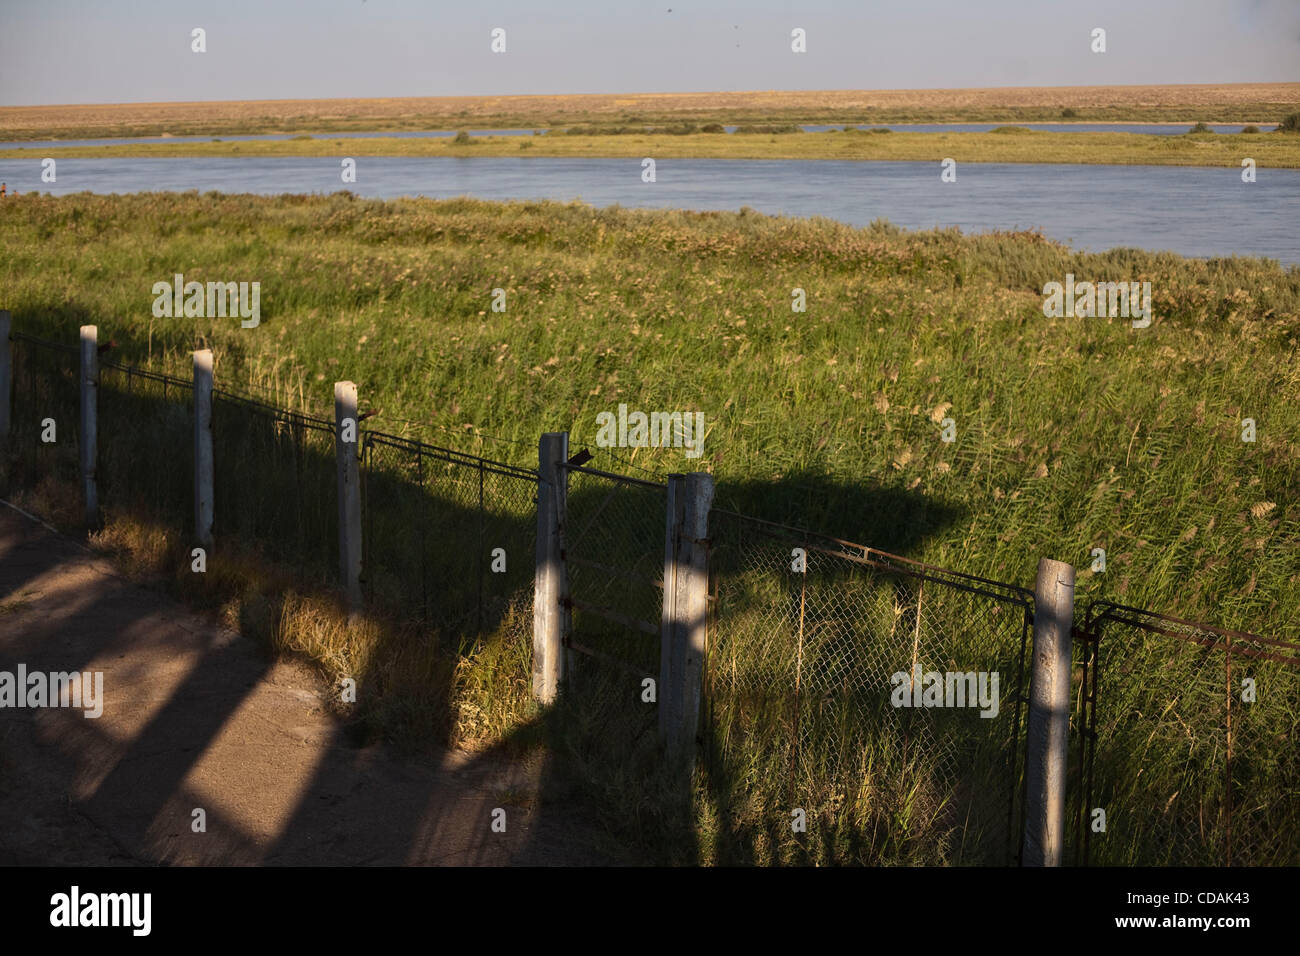 Sep 03, 2010 - Baikonur Cosmodrome, Kazakhstan - Summer house with its views of Syr Darya River, was the place where - Stock Image